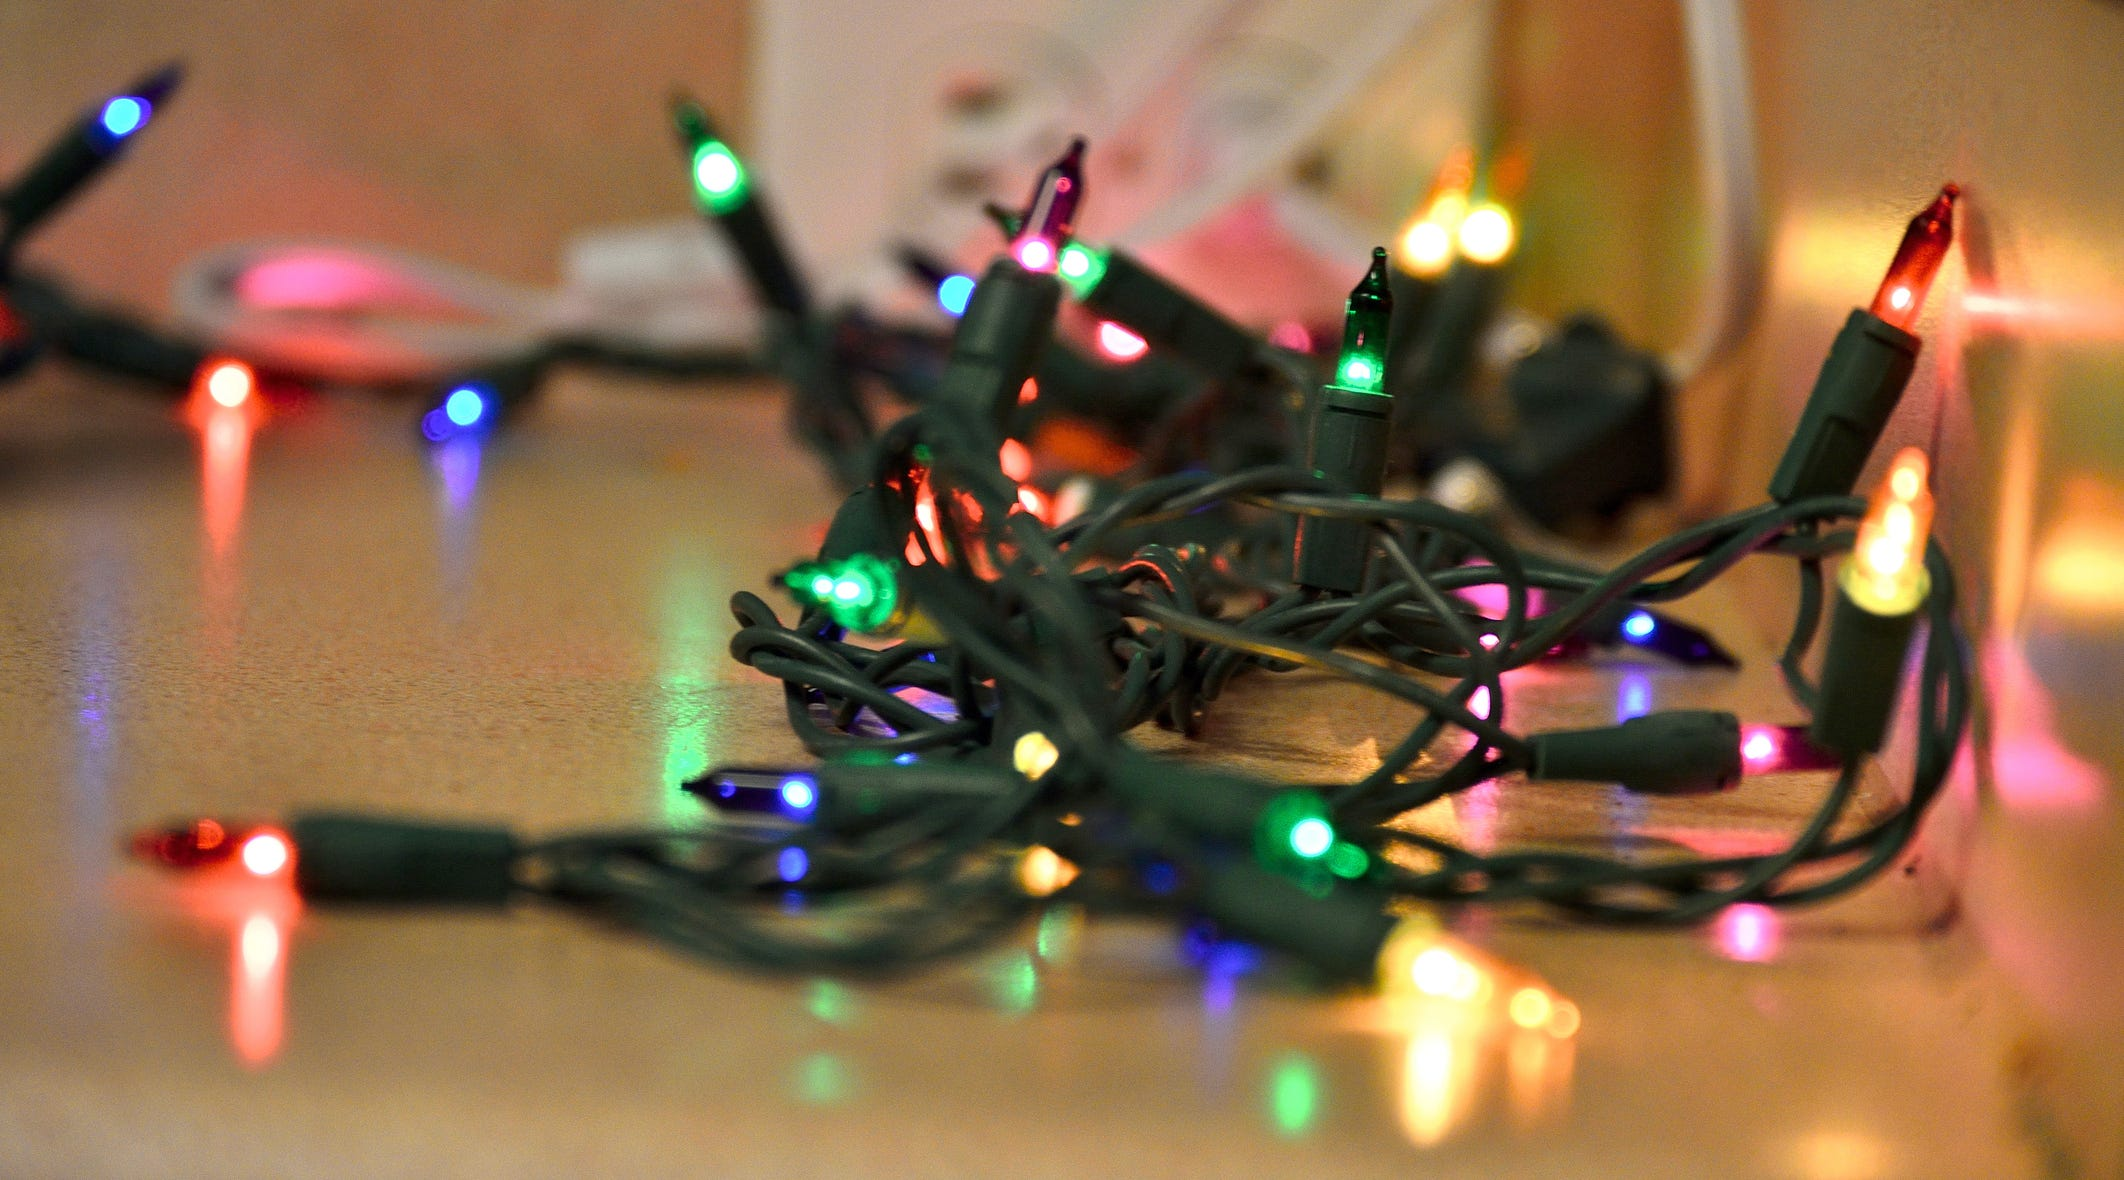 How to fix broken Christmas lights: Tips for solving common problems with string lights, burned-out bulbs